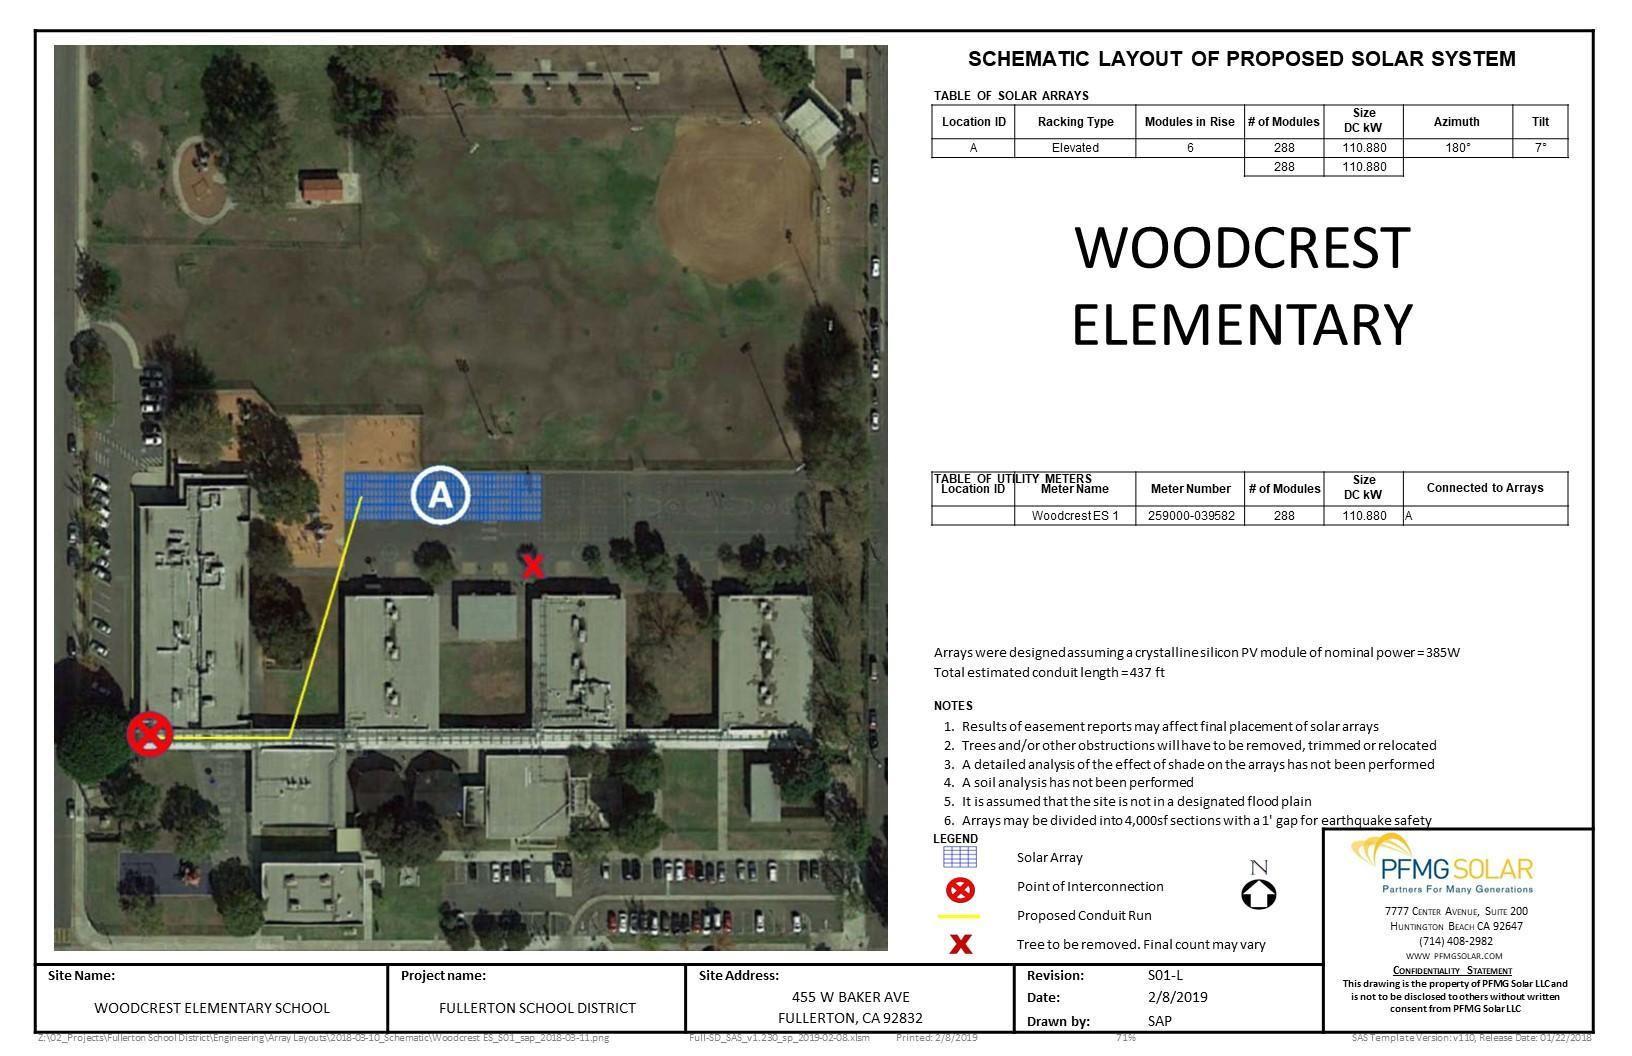 Woodcrest Elementary Schematic Layout of Proposed Solar System